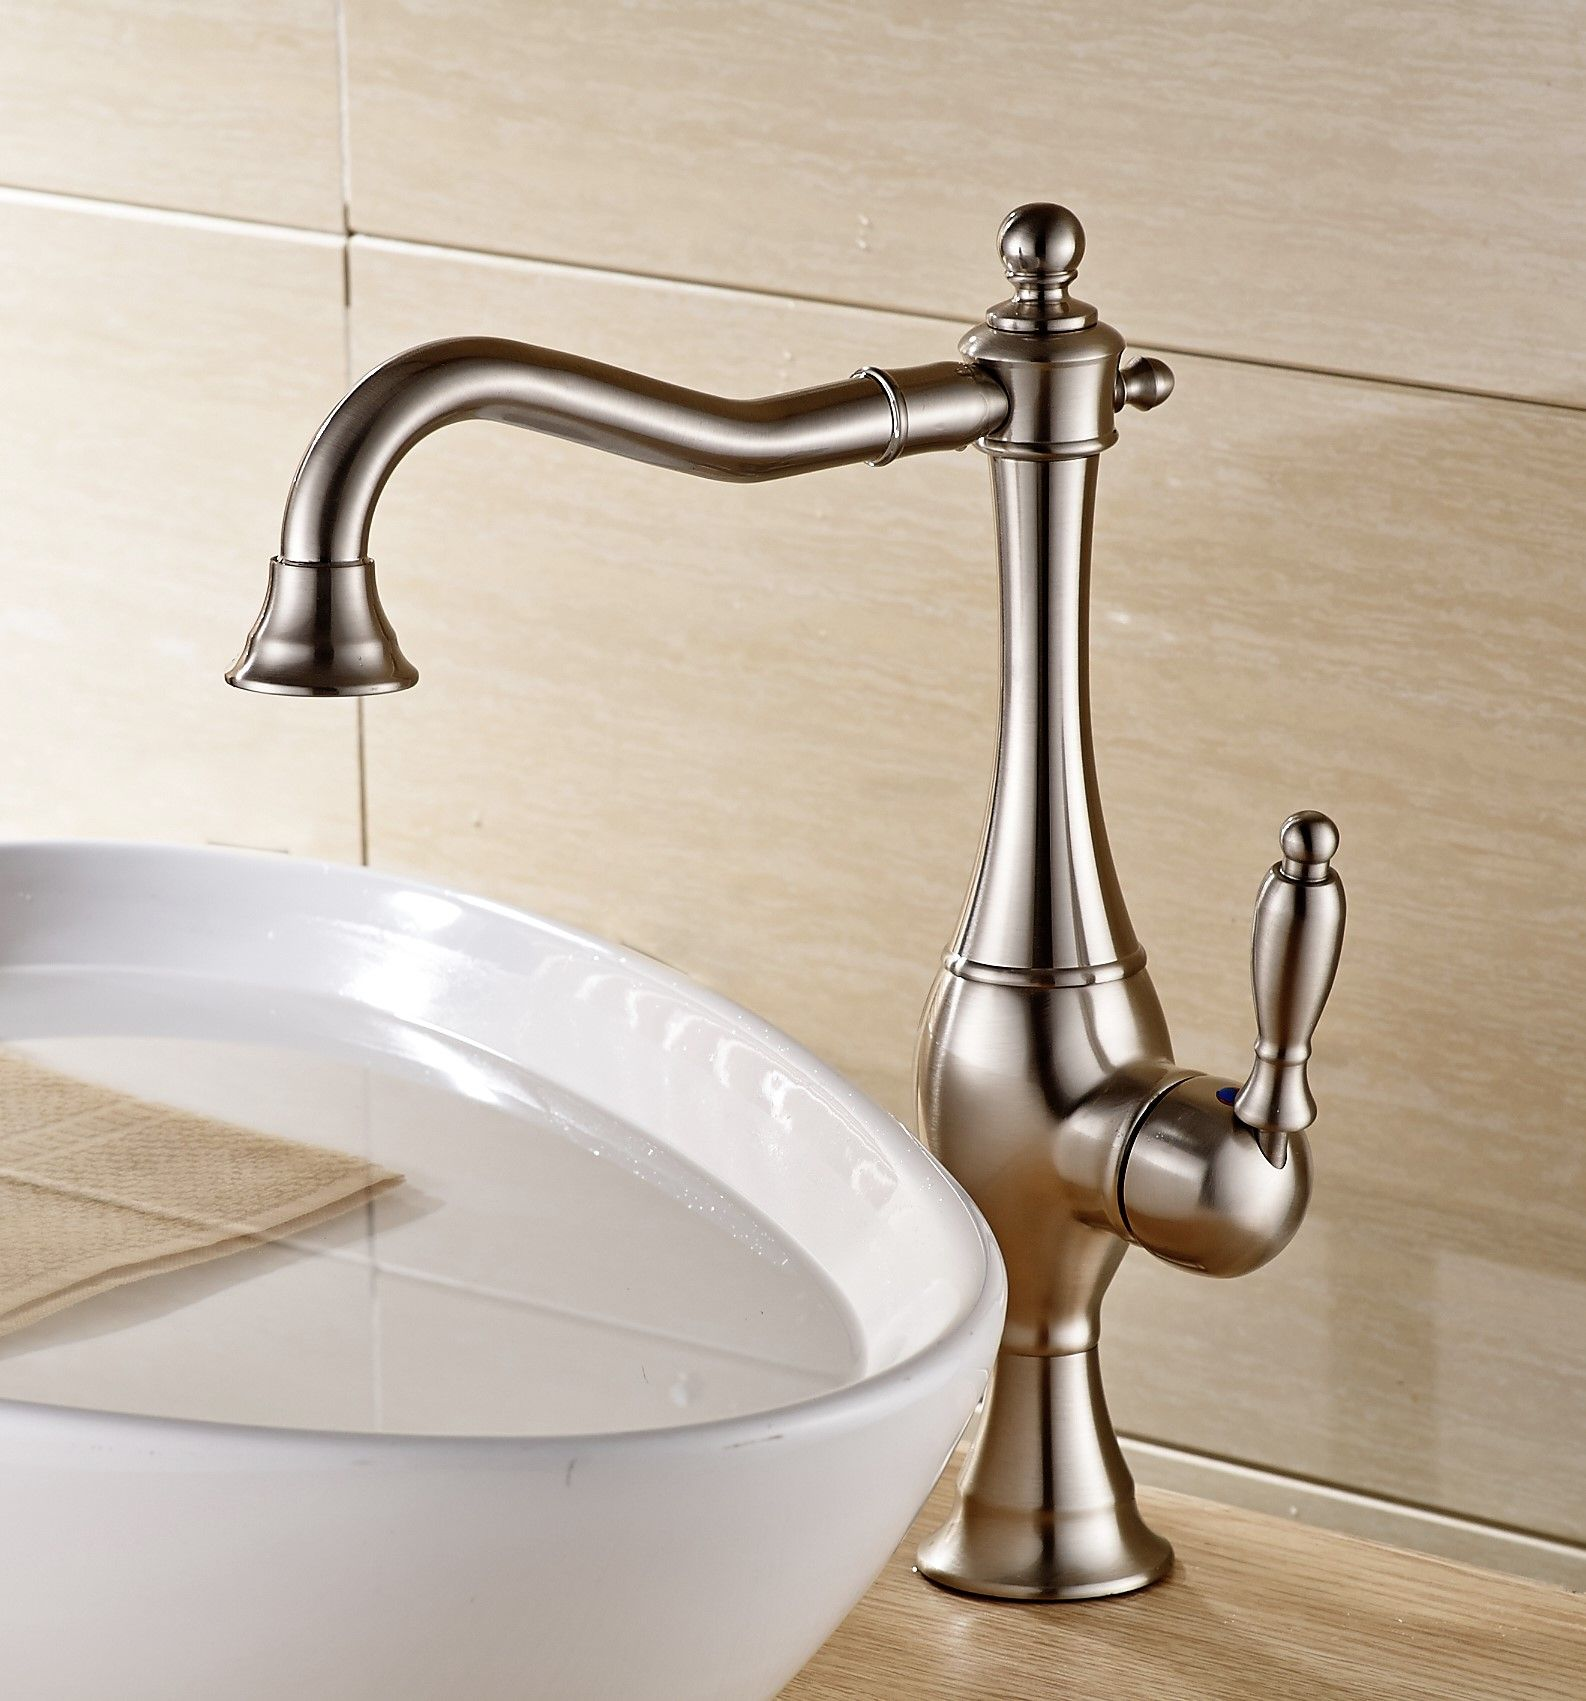 2016 Antique Classic Nickel Brushed Single Handle Bathroom Sink ...